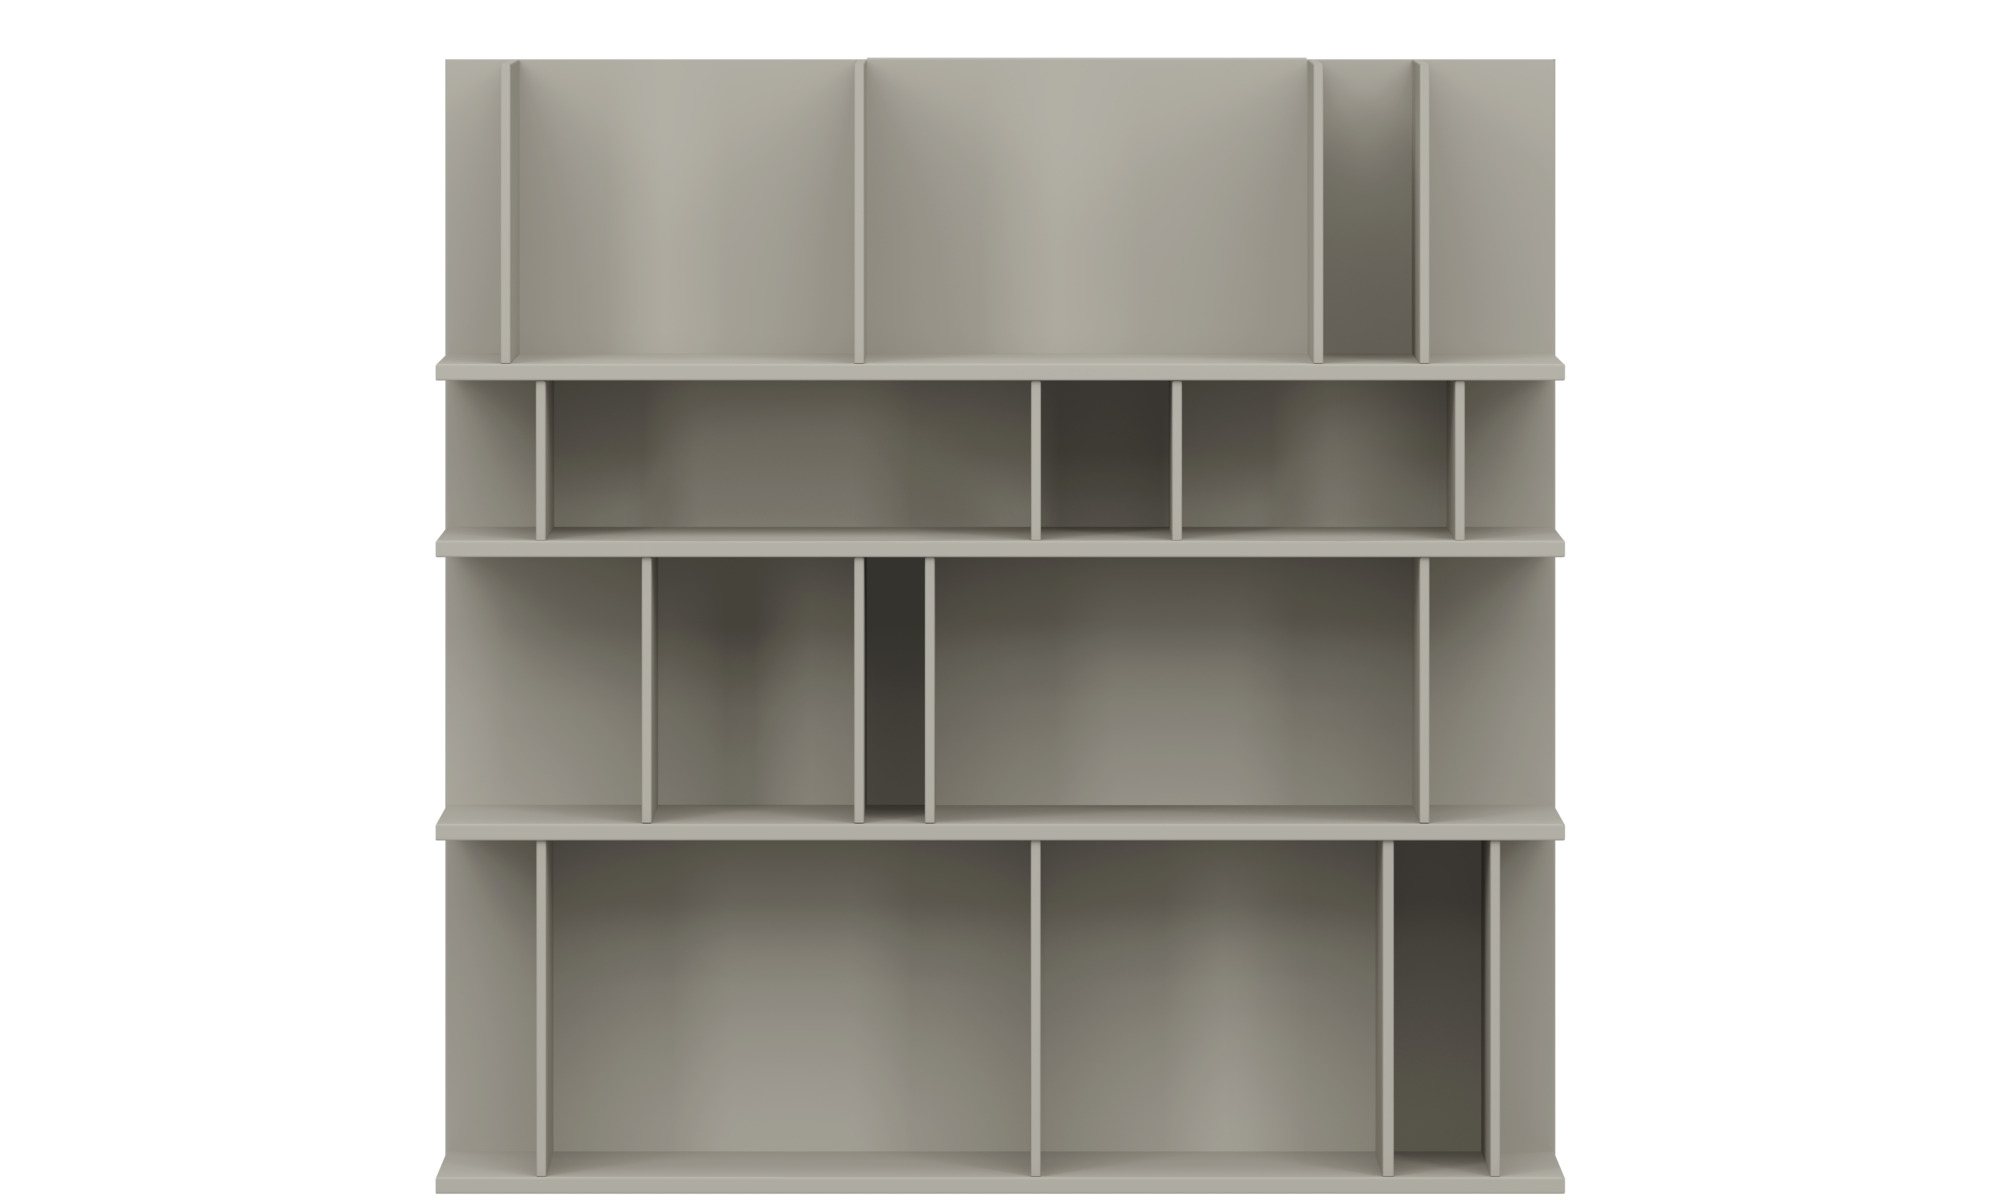 Wall systems - Como wall system - Lacquered